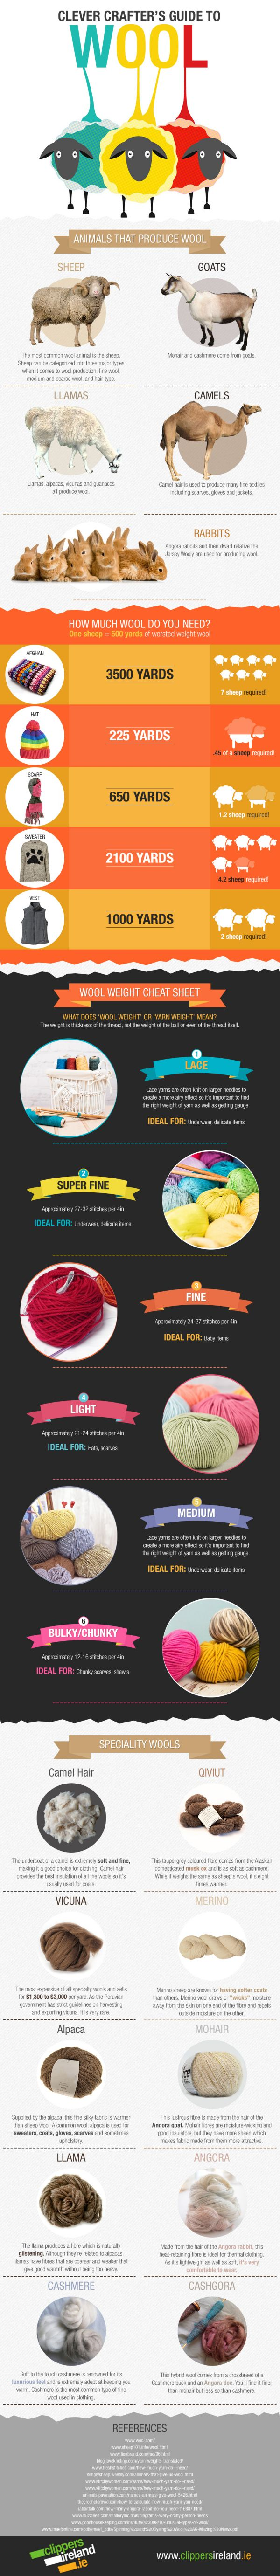 clever-crafters-guide-to-wool (1)